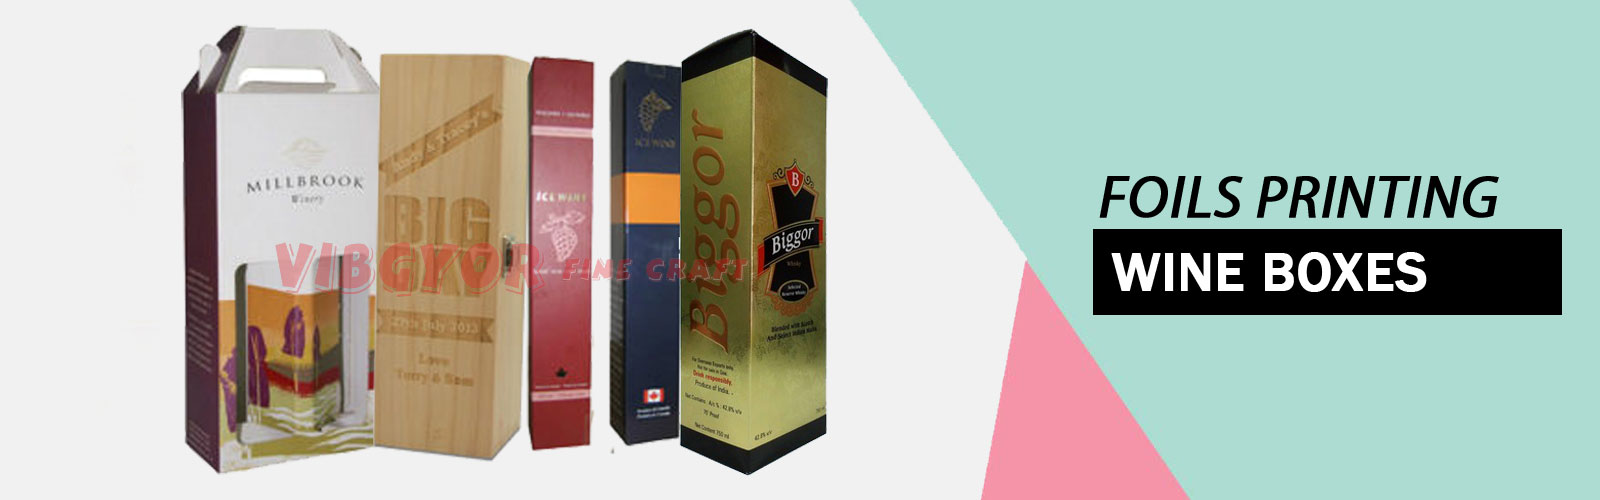 Foils printing Wine Boxes